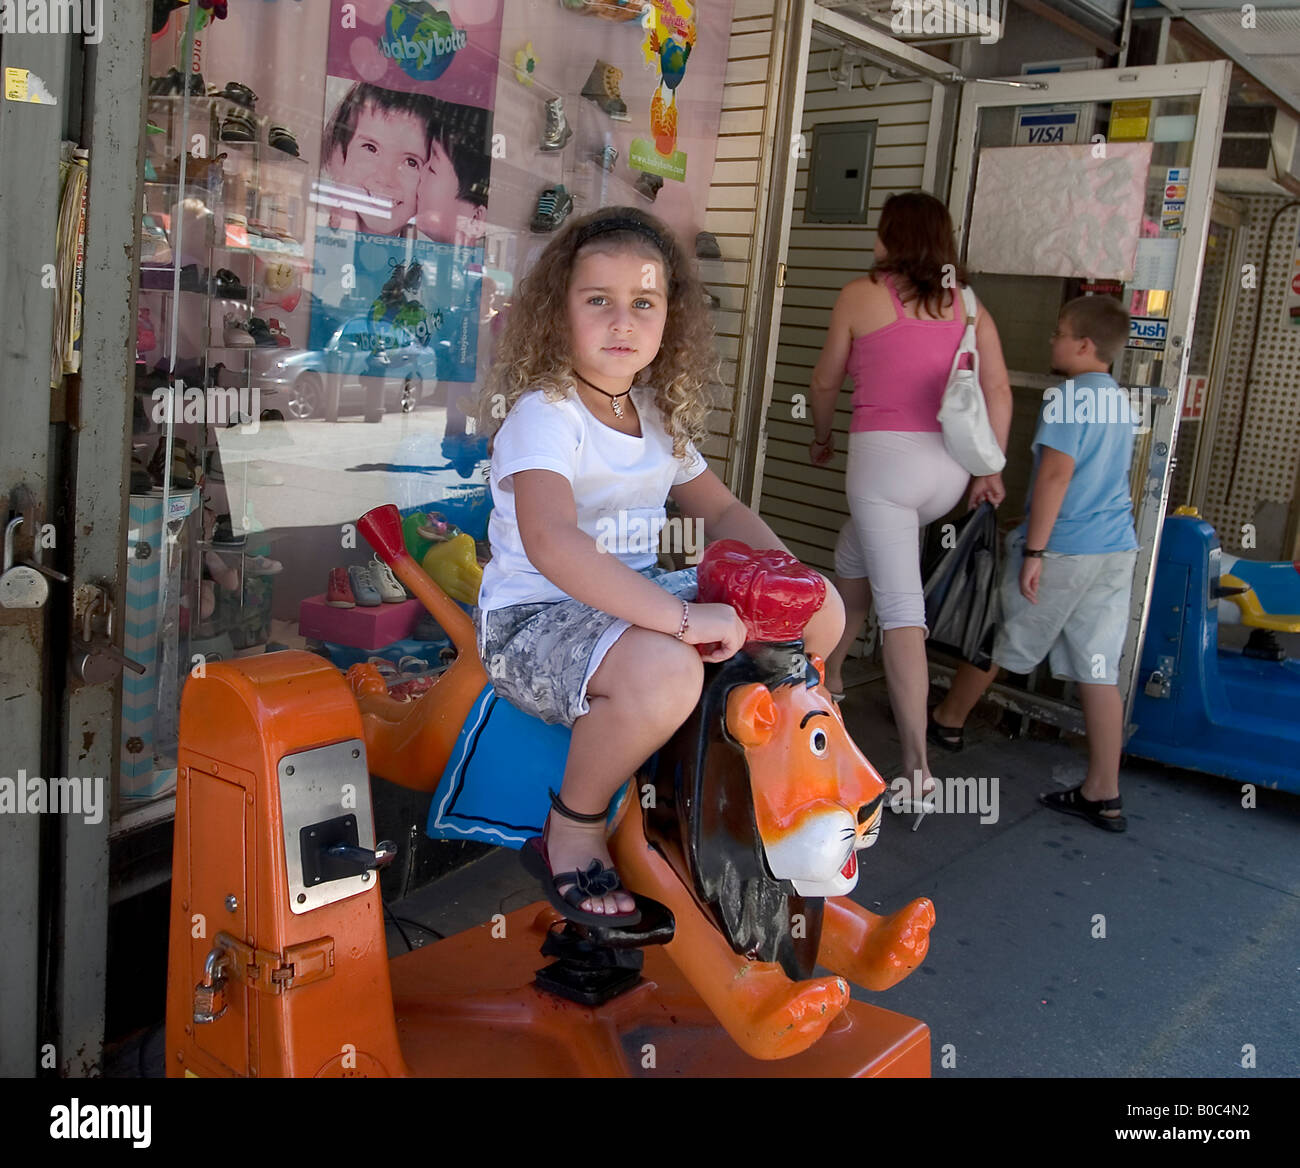 Young girl rides toy speaking